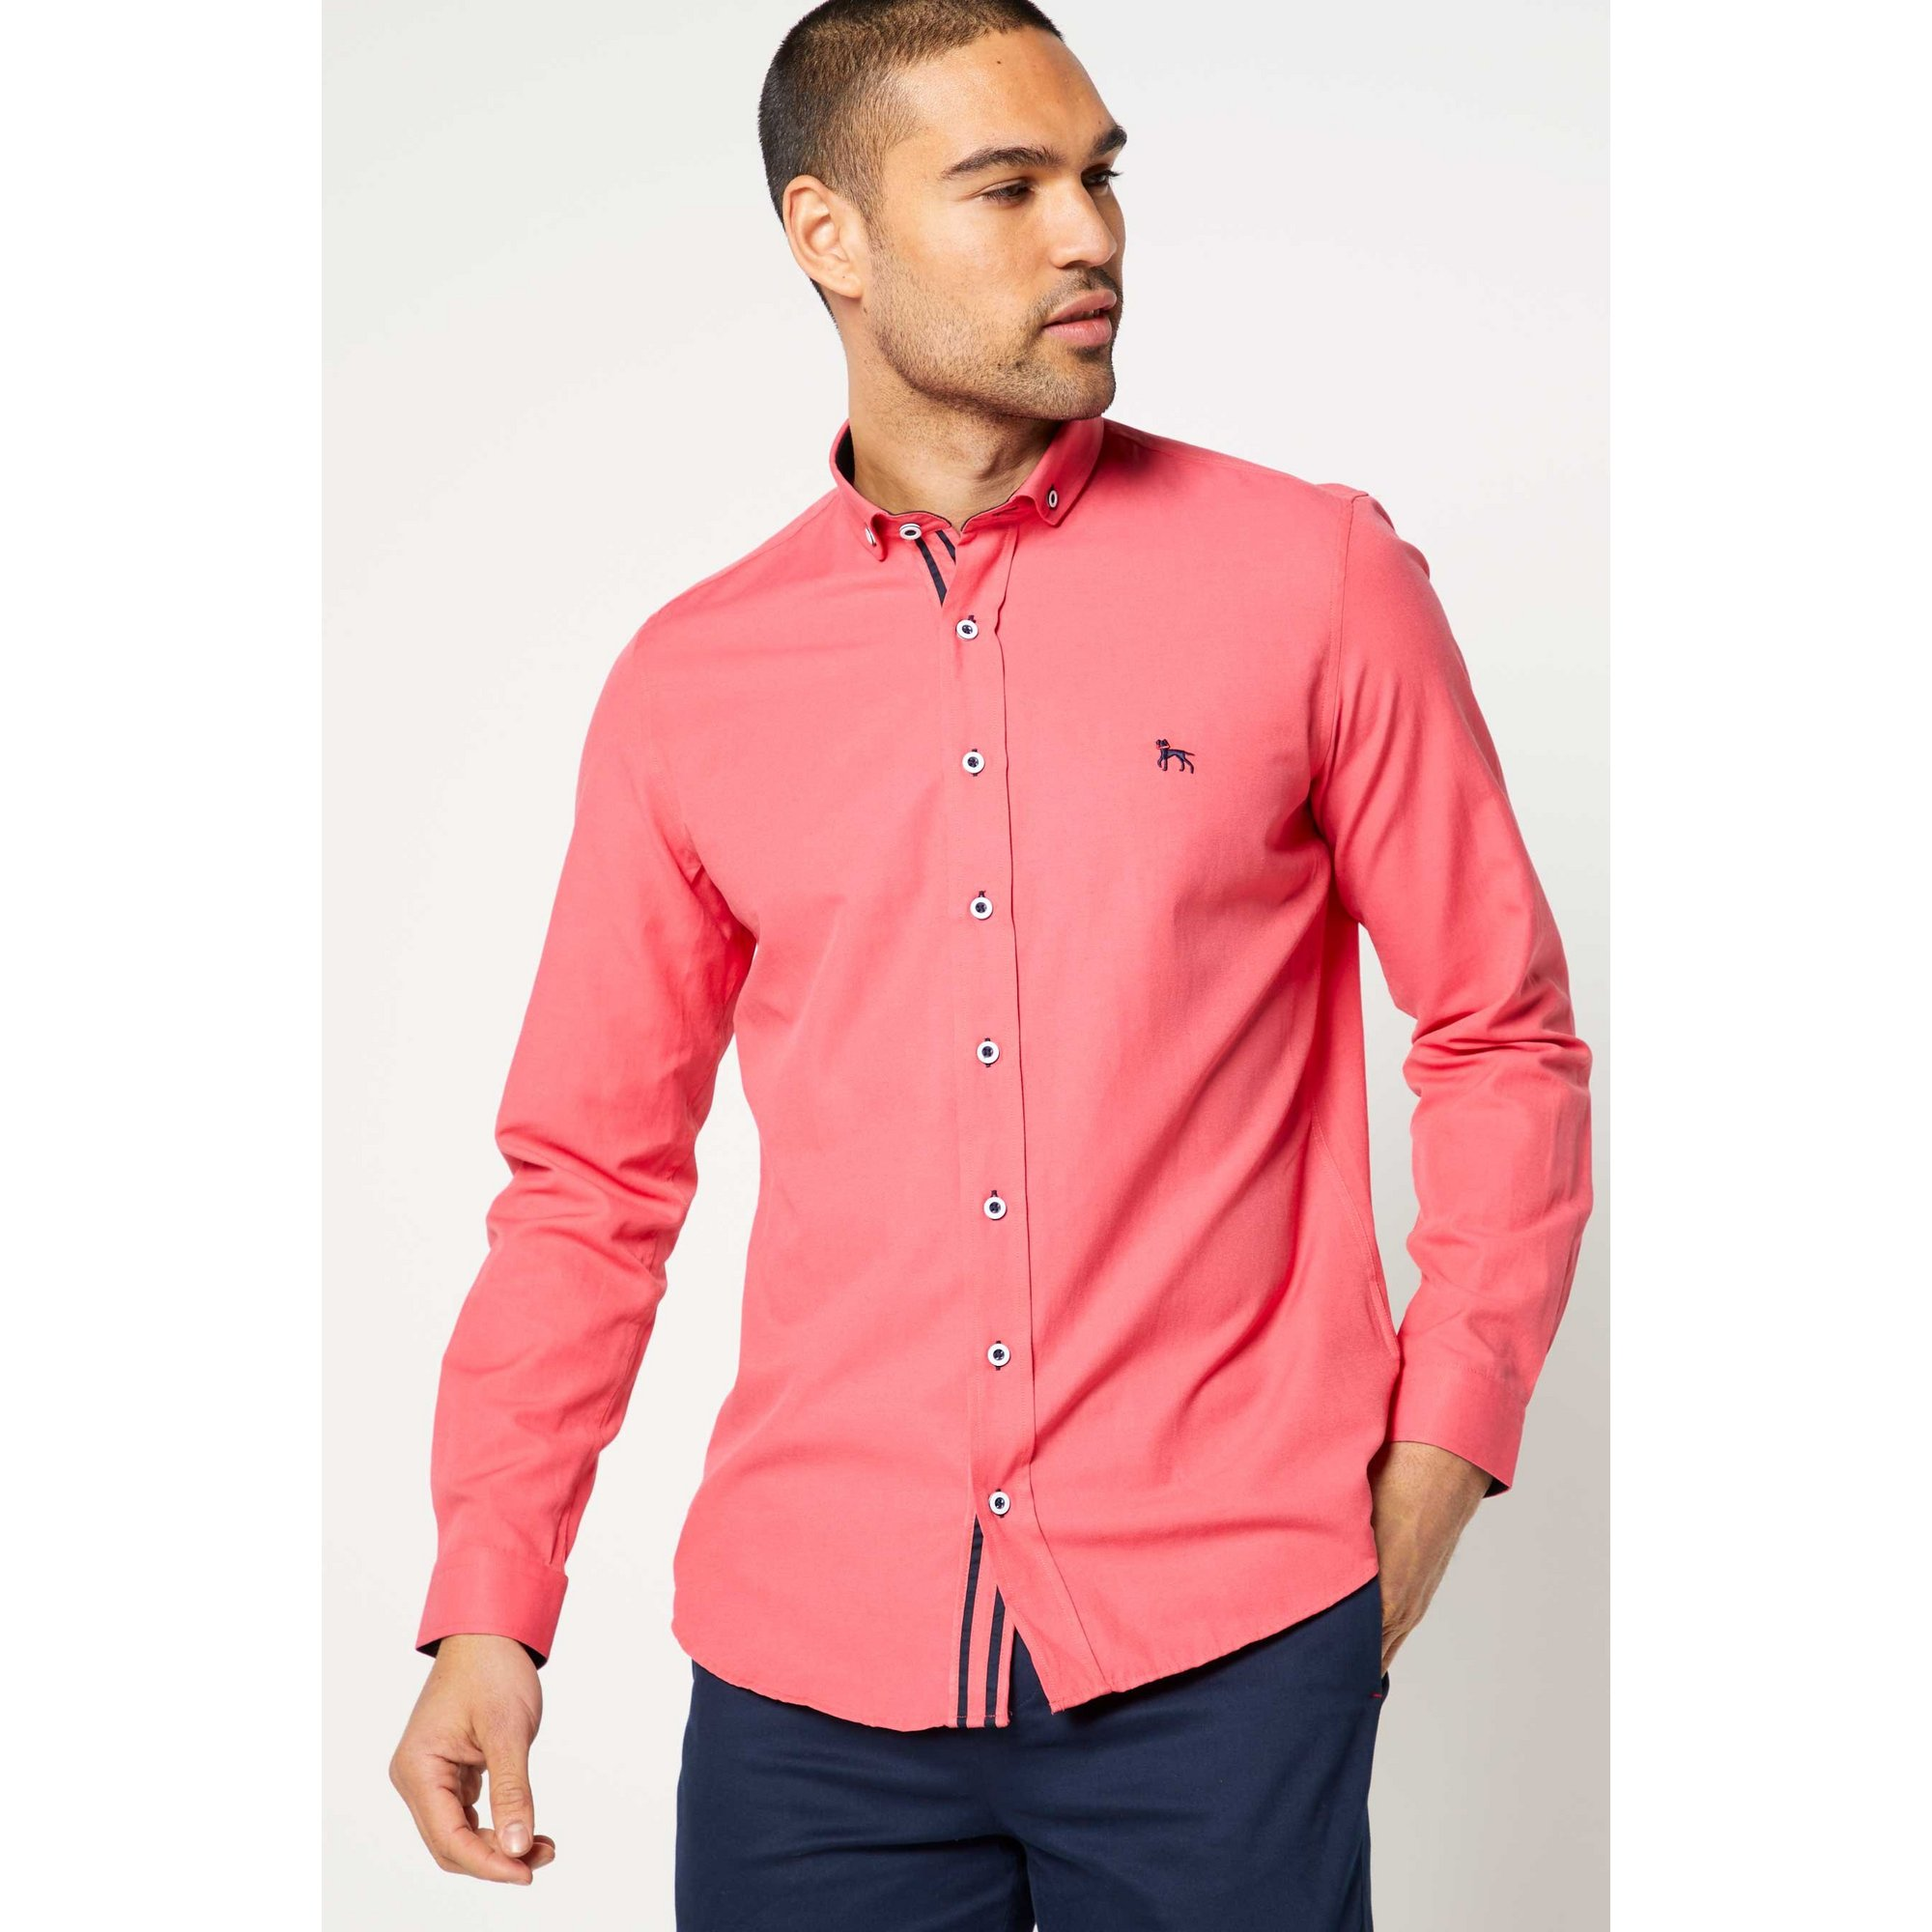 Image of Bewley and Ritch Aland B Long Sleeve Shirt